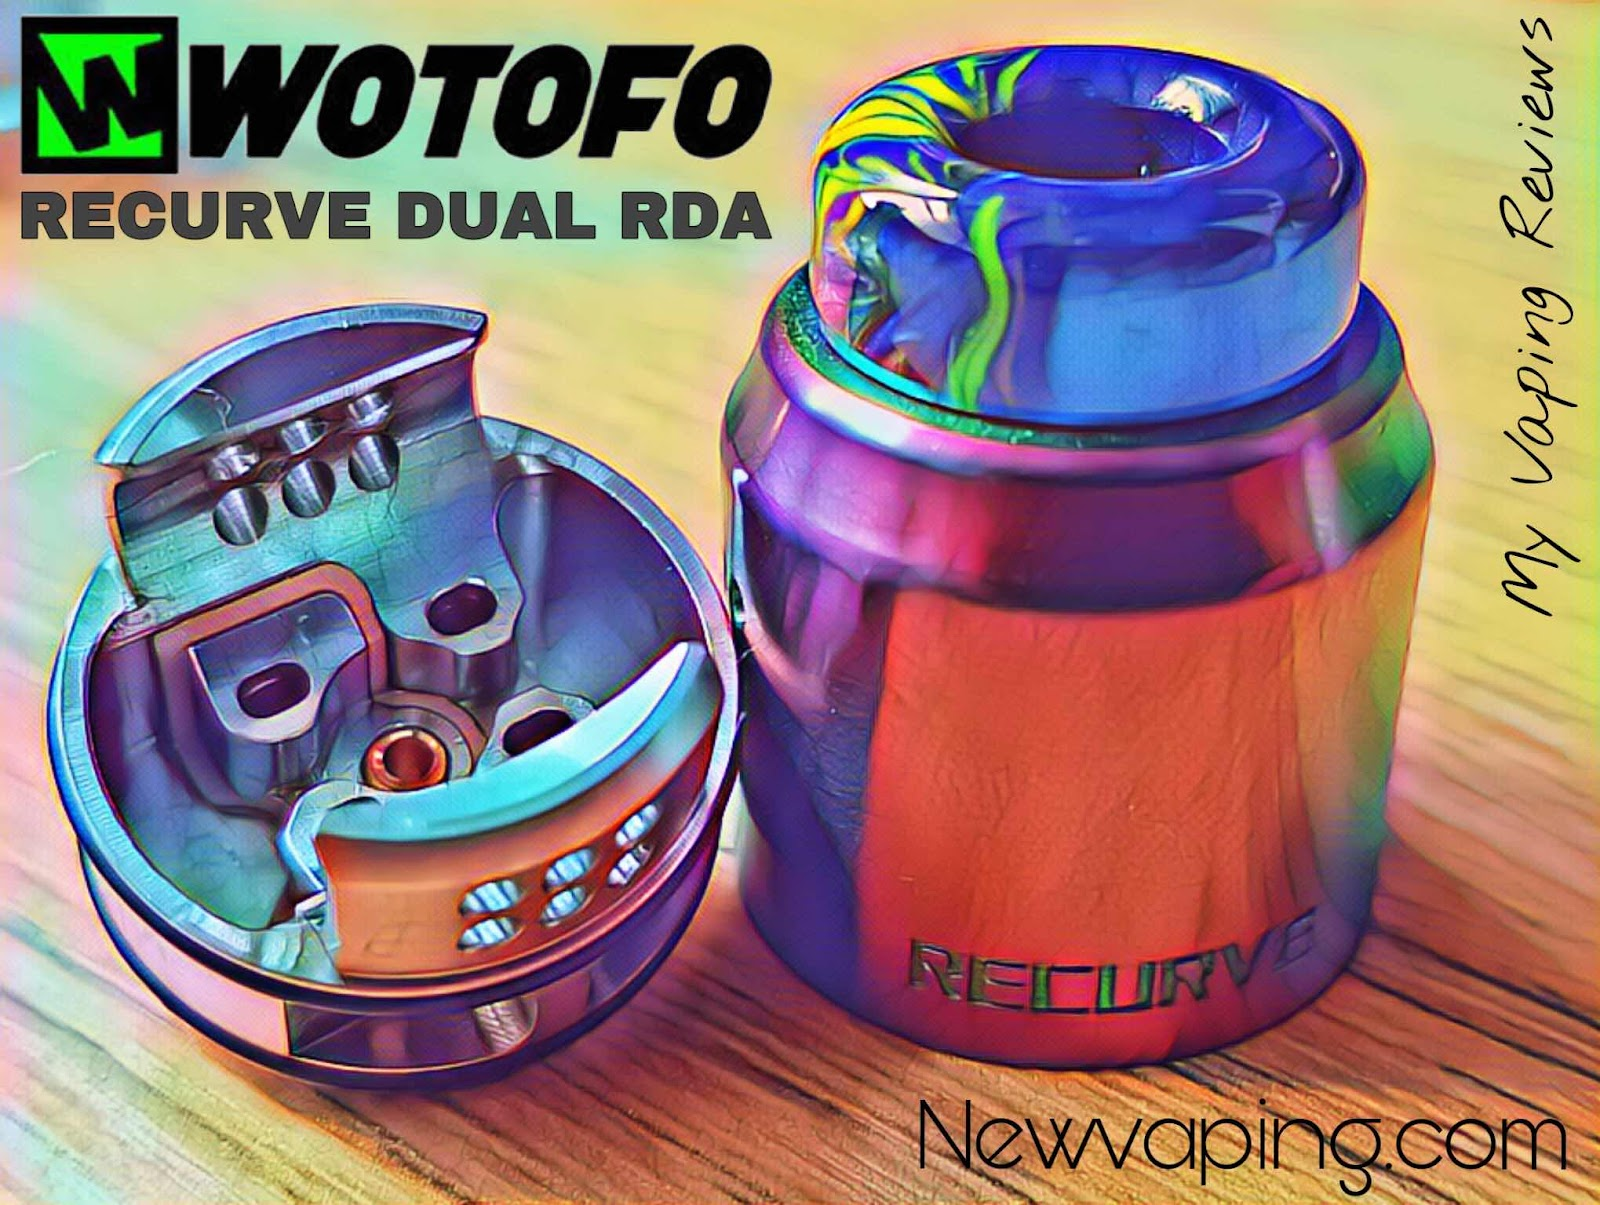 Wotofo Recurve Dual RDA Review | My Vaping Reviews